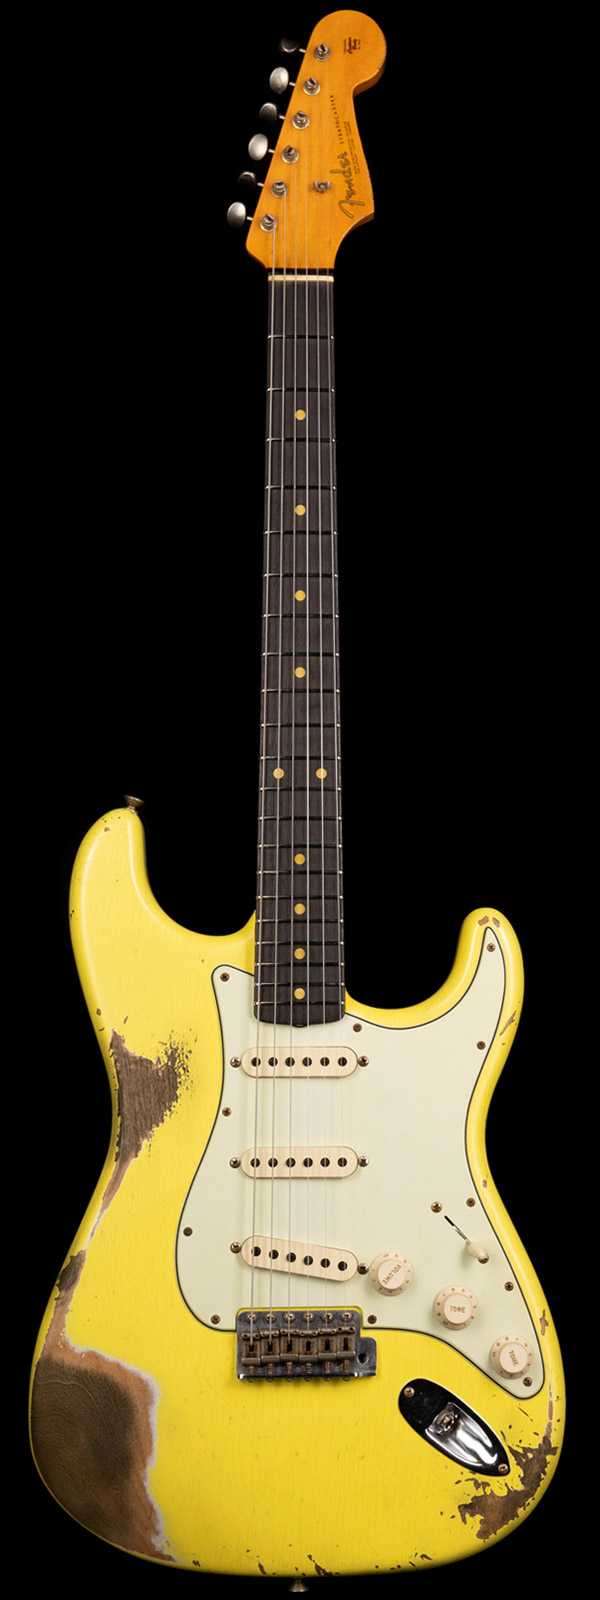 Fender Custom Shop 1963 Stratocaster Heavy Relic Graffiti Yellow